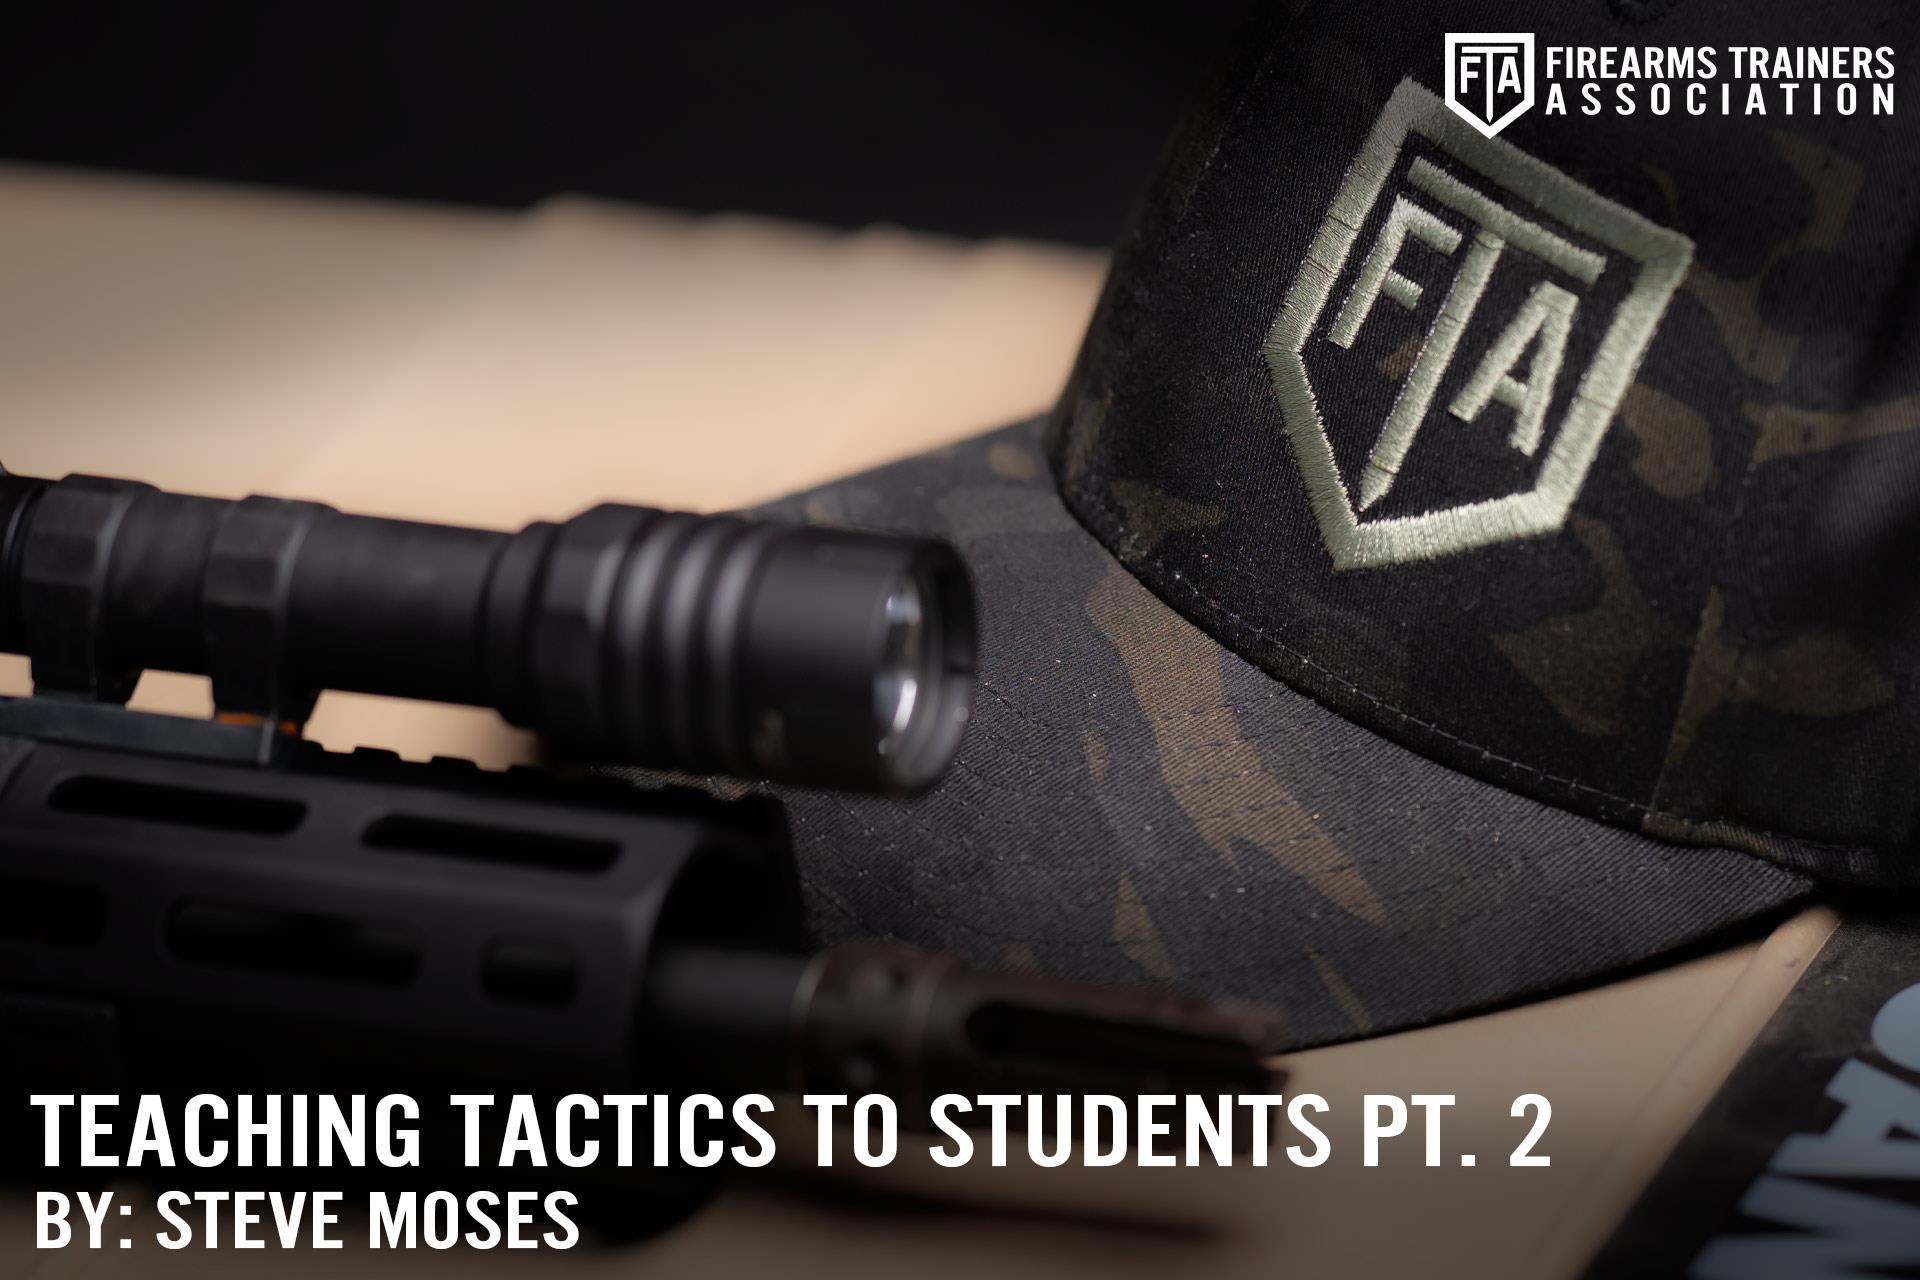 TEACHING TACTICS TO STUDENTS PT. 2